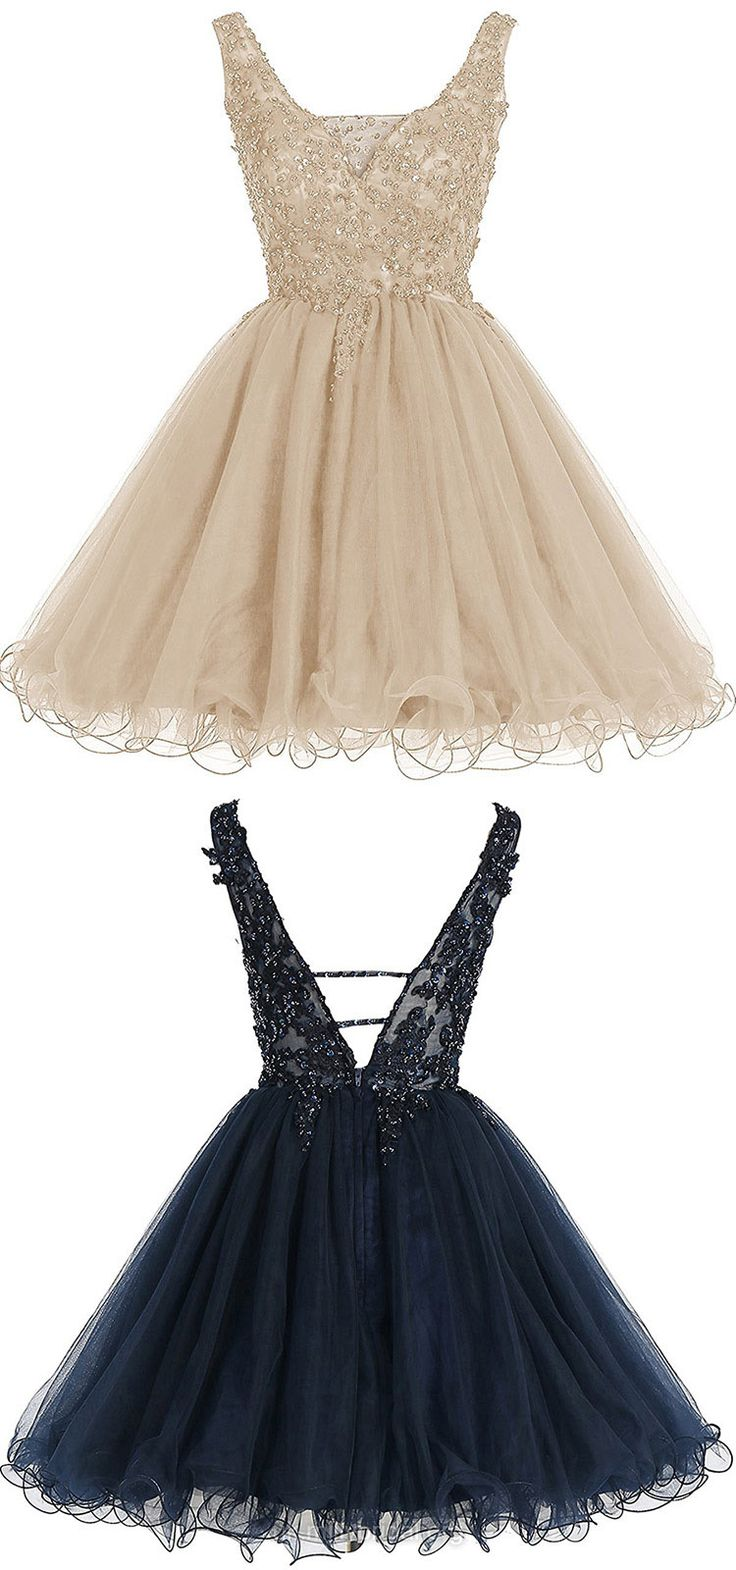 Champagne Prom Dresses Short, Cheap Prom Dresses For Teens 2018, Junior Party Dresses A-line, V-neck Cocktail Dresses Tulle, Beading Homecoming Dresses Backless